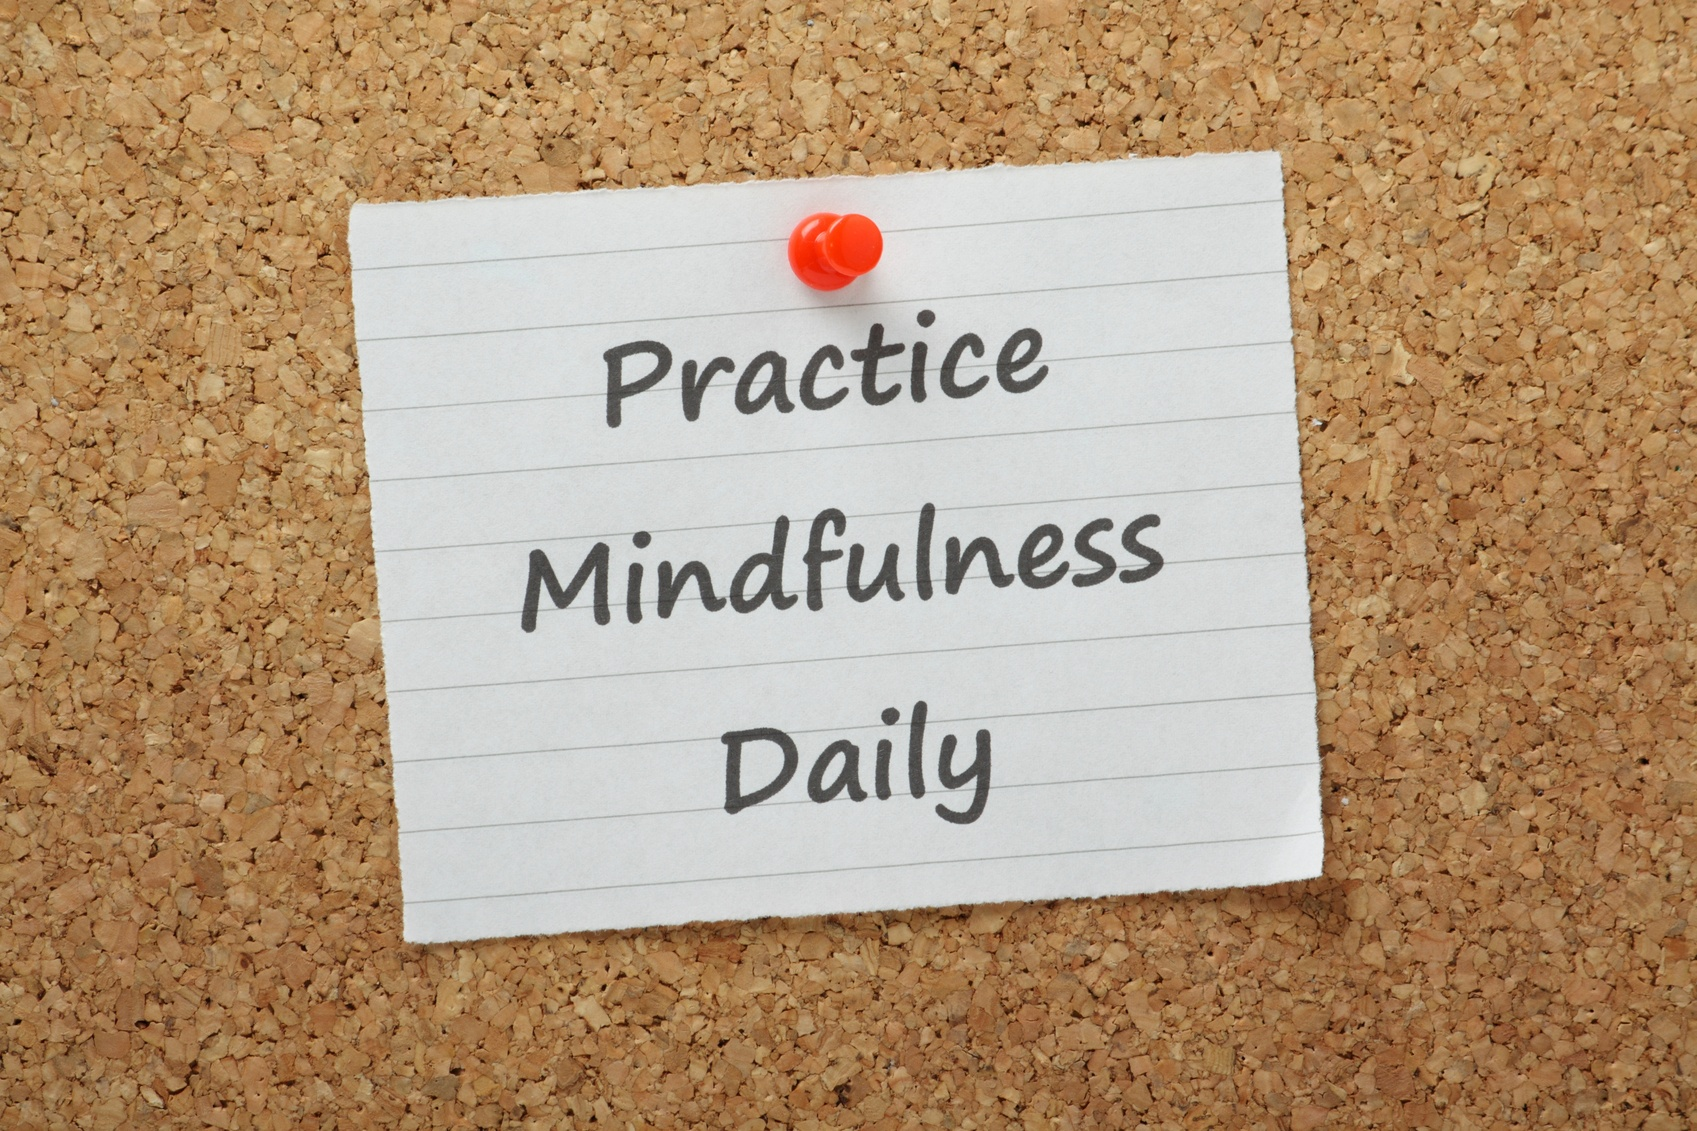 Practice-Mindfulness-Daily-000037220282_Medium.jpg